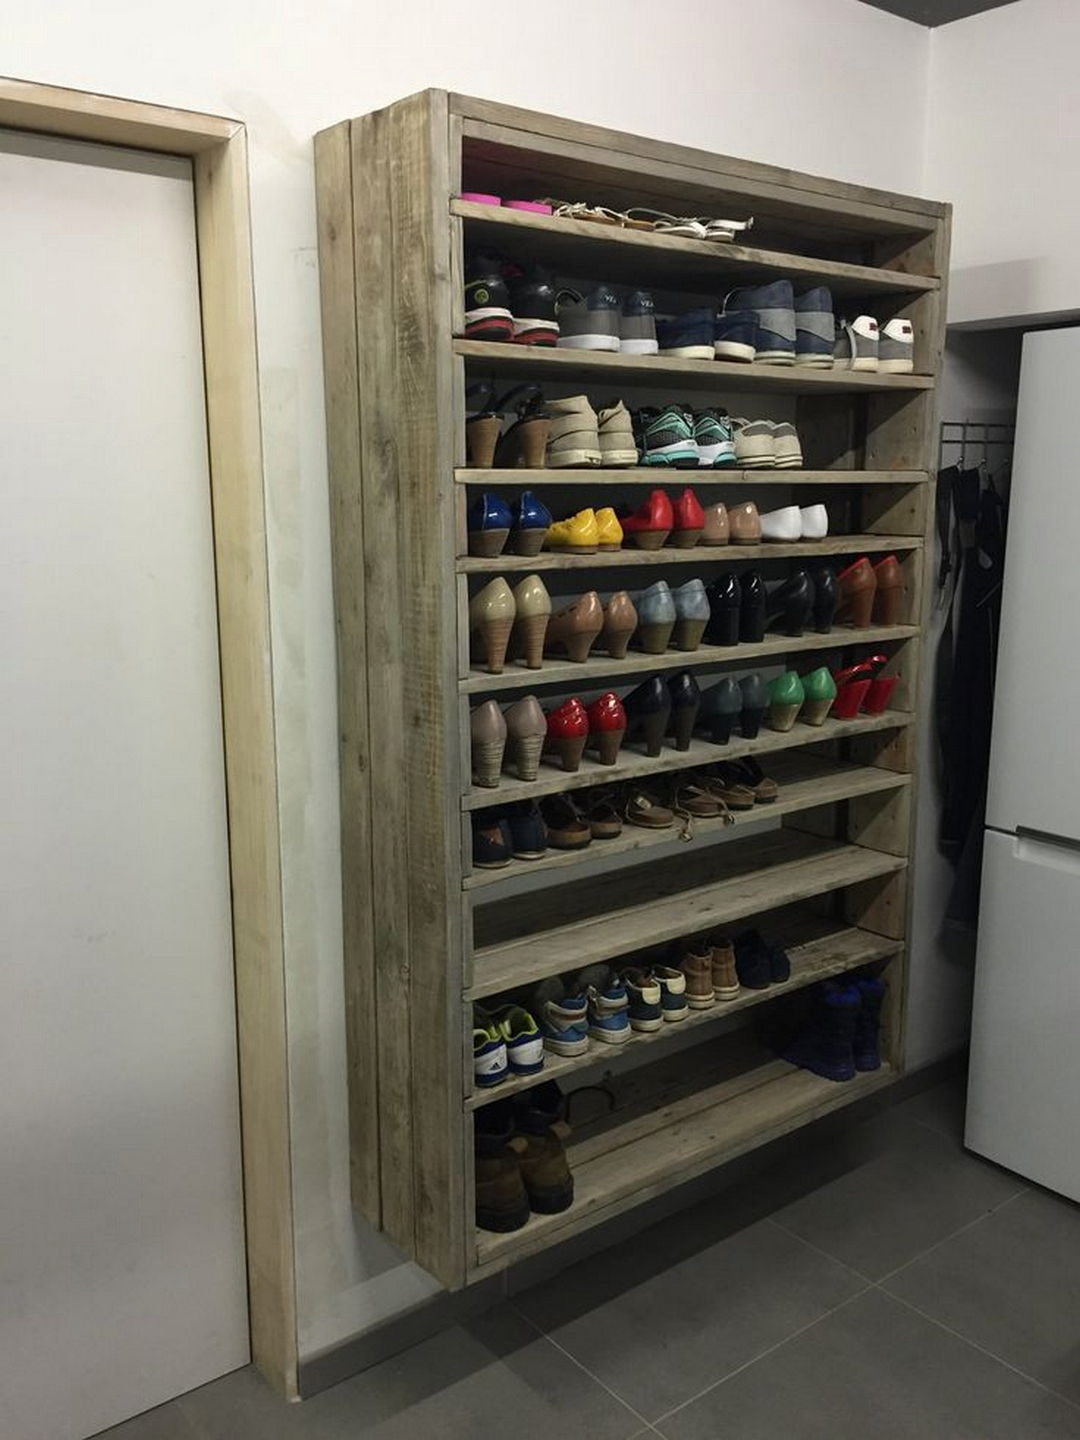 58 Brilliant Shoes Rack Design Ideas  Https://www.futuristarchitecture.com/16548 Shoes Rack.html